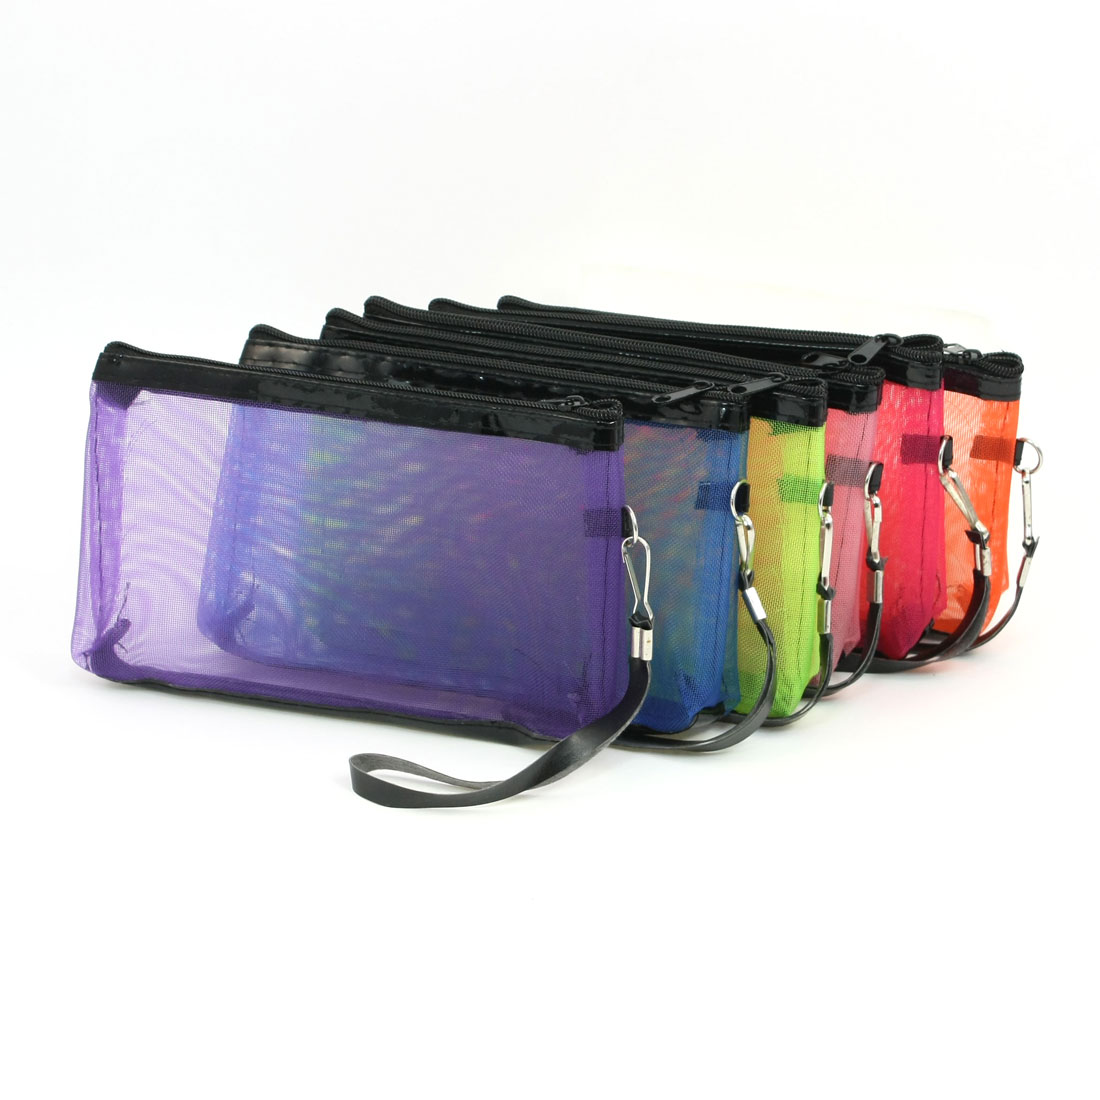 6 Pieces Multi Color Mesh Design Zipper Make Up Bag for Ladies